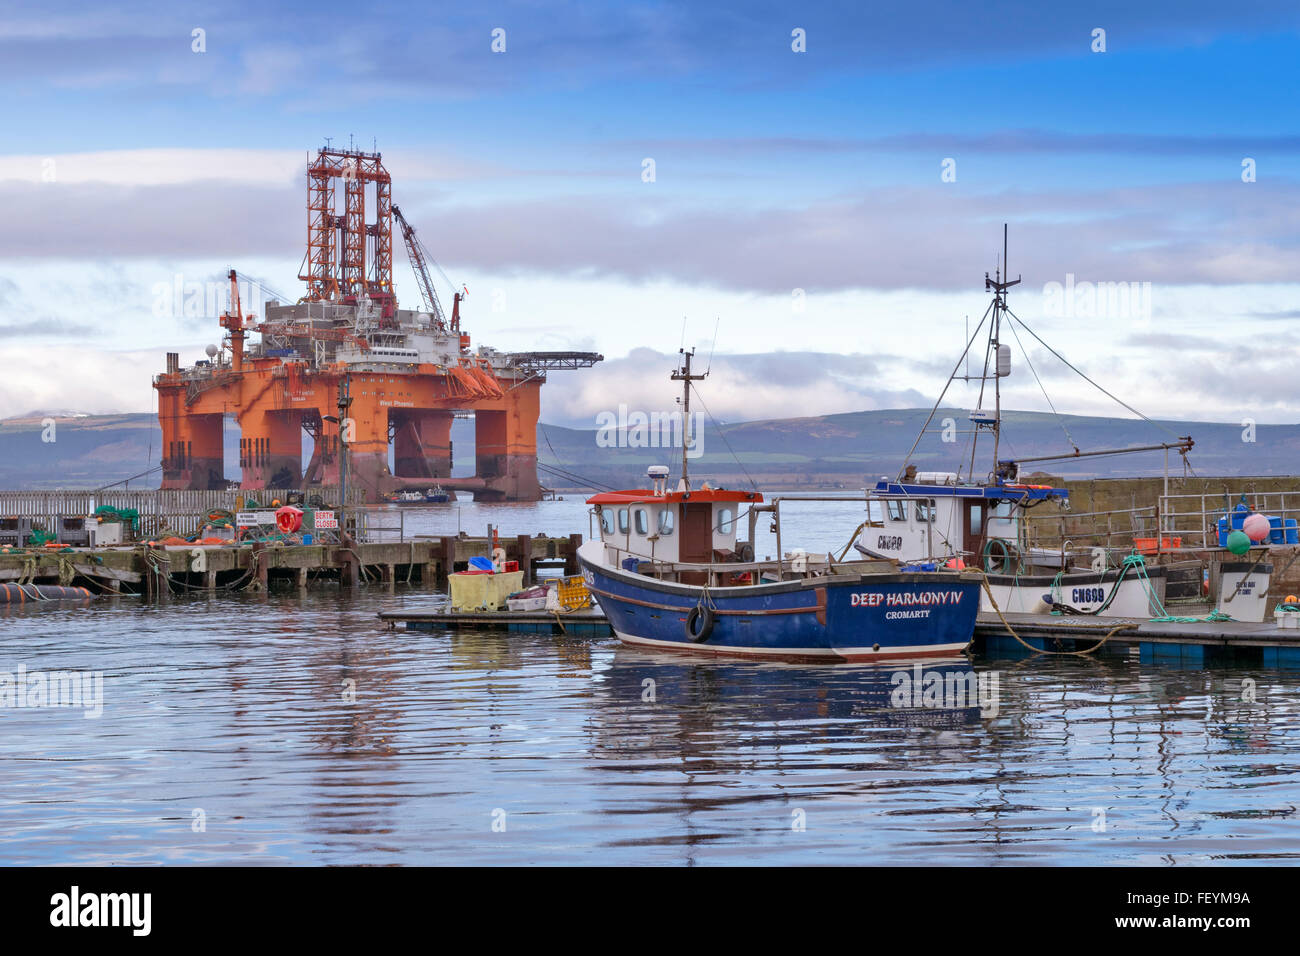 NORTH SEA OIL RIG WEST PHOENIX ANCHORED OUTSIDE CROMARTY HARBOUR WITH FISHING BOATS CROMARTY FIRTH BLACK ISLE SCOTLAND - Stock Image